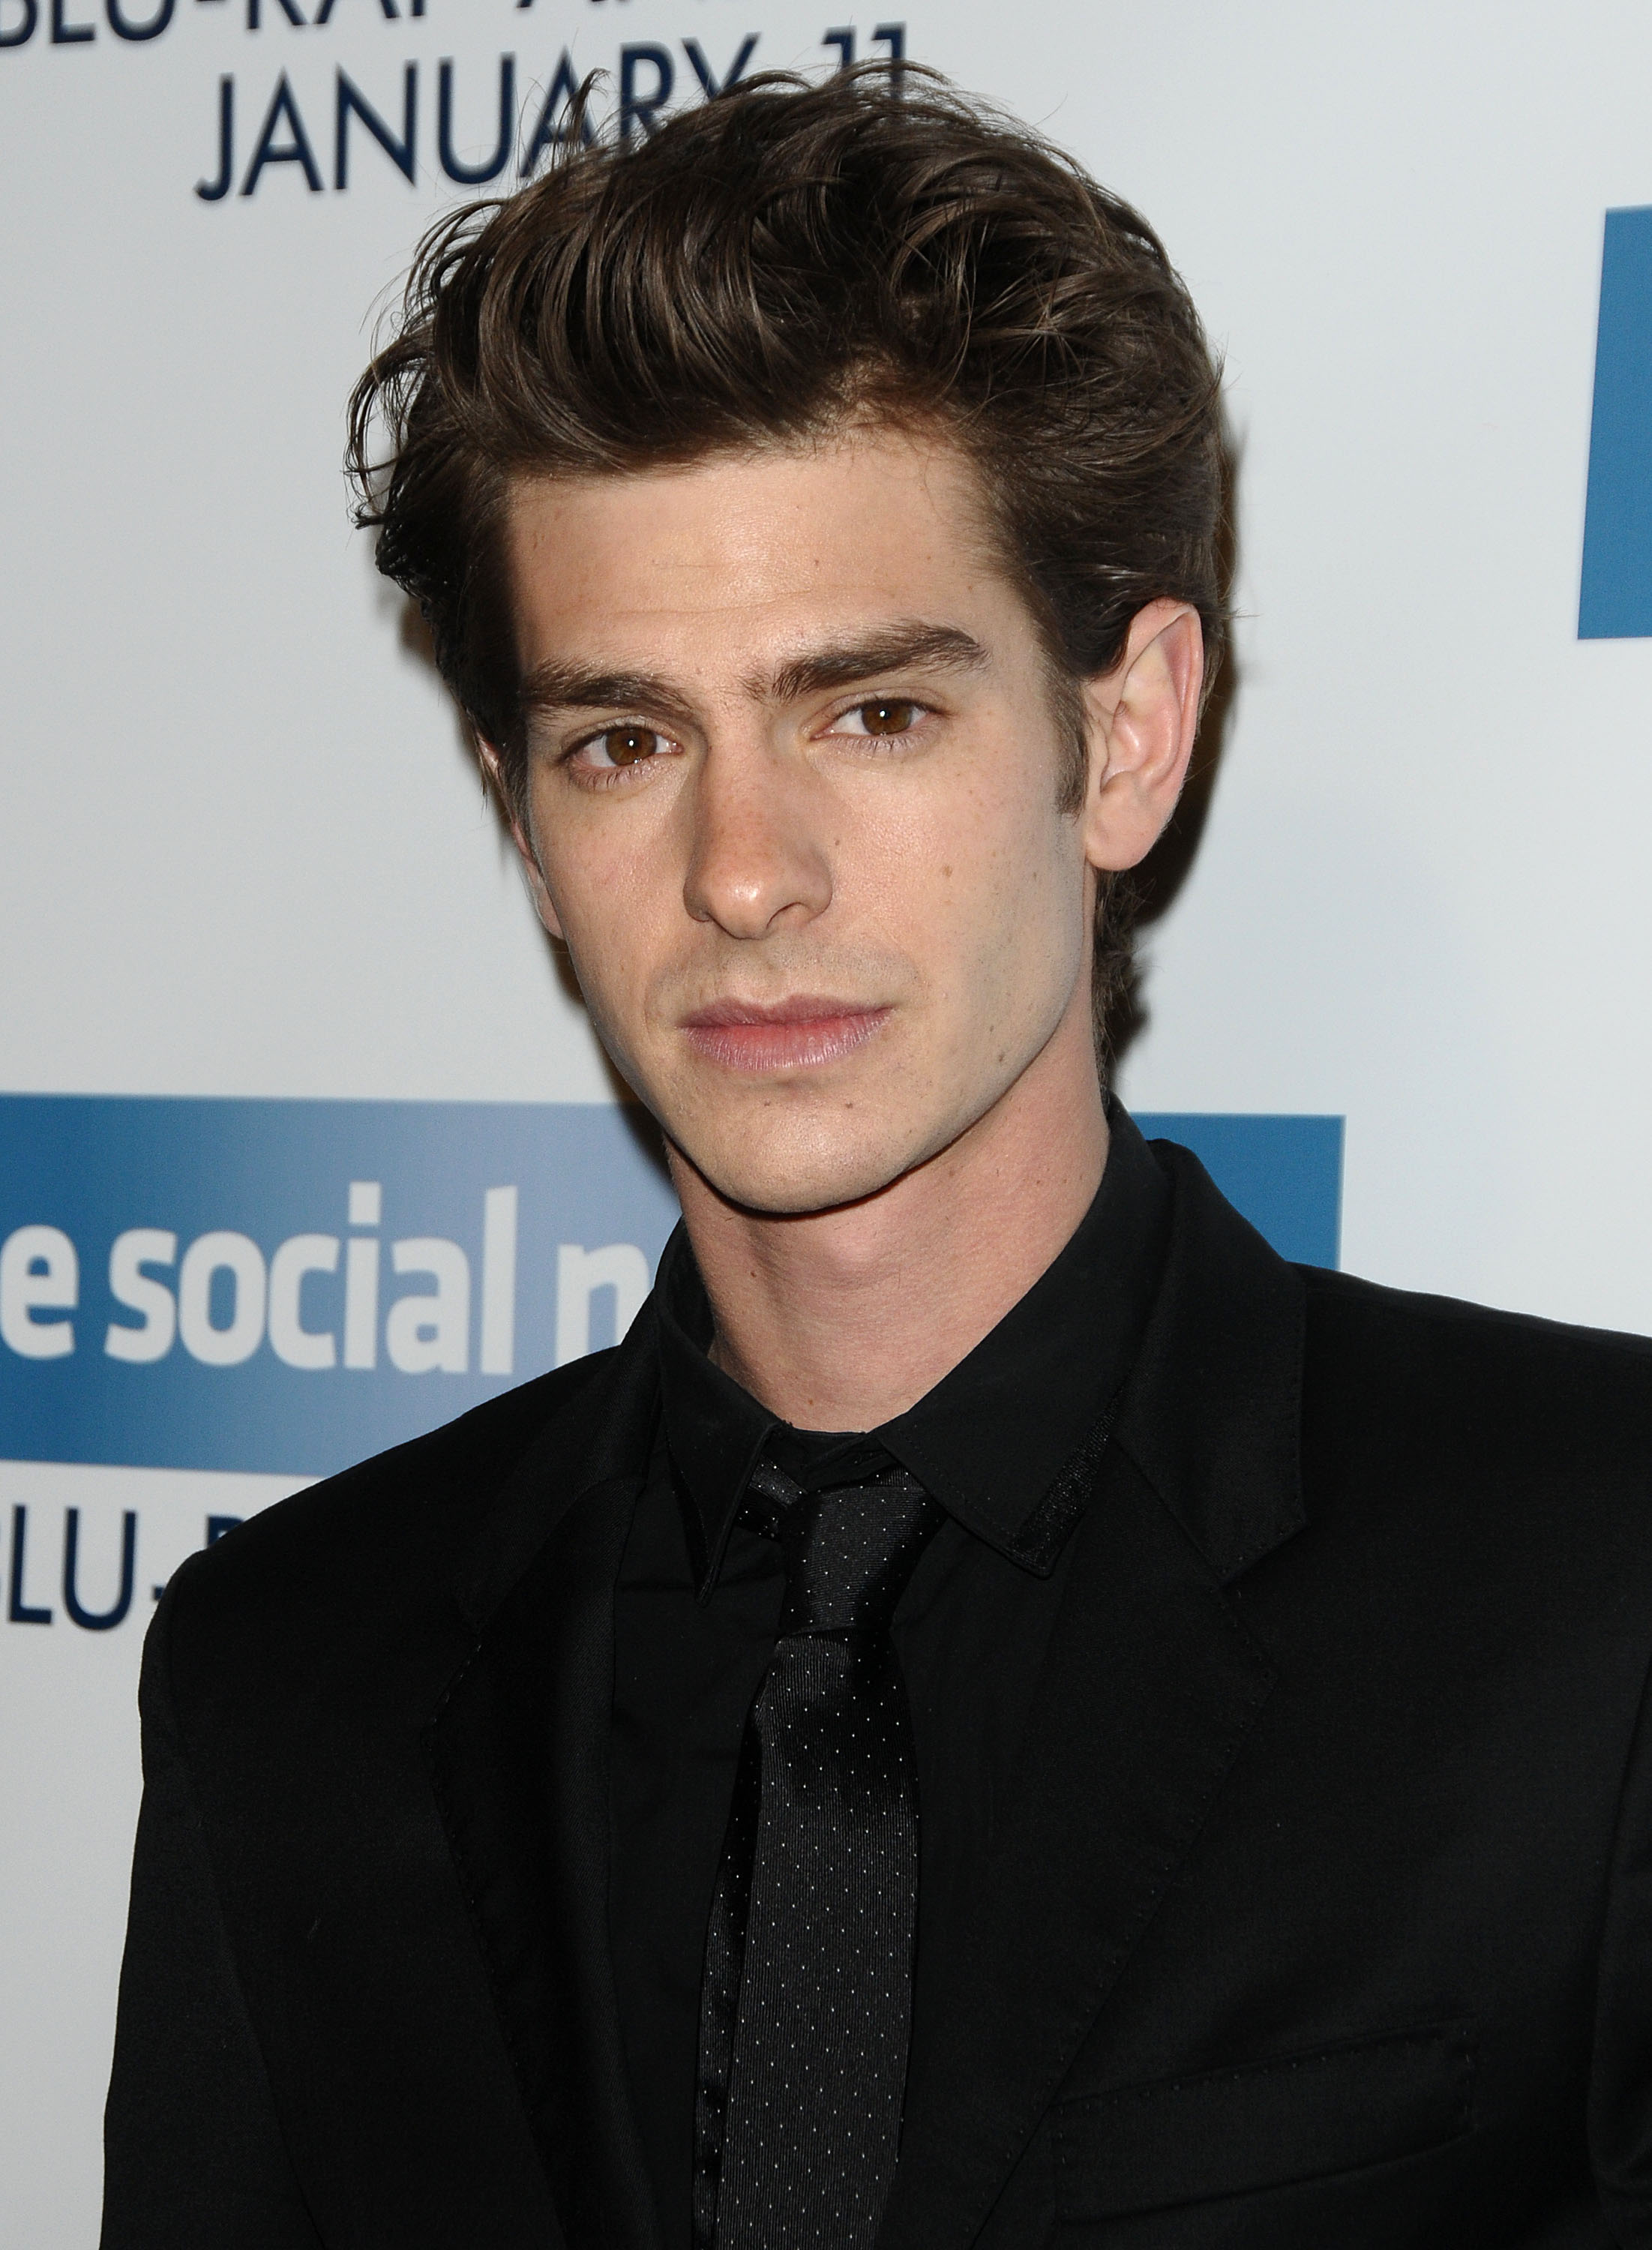 Andrew Garfield reveals why he wasn't handsome enough for role of Prince Caspian and we 100% reject that